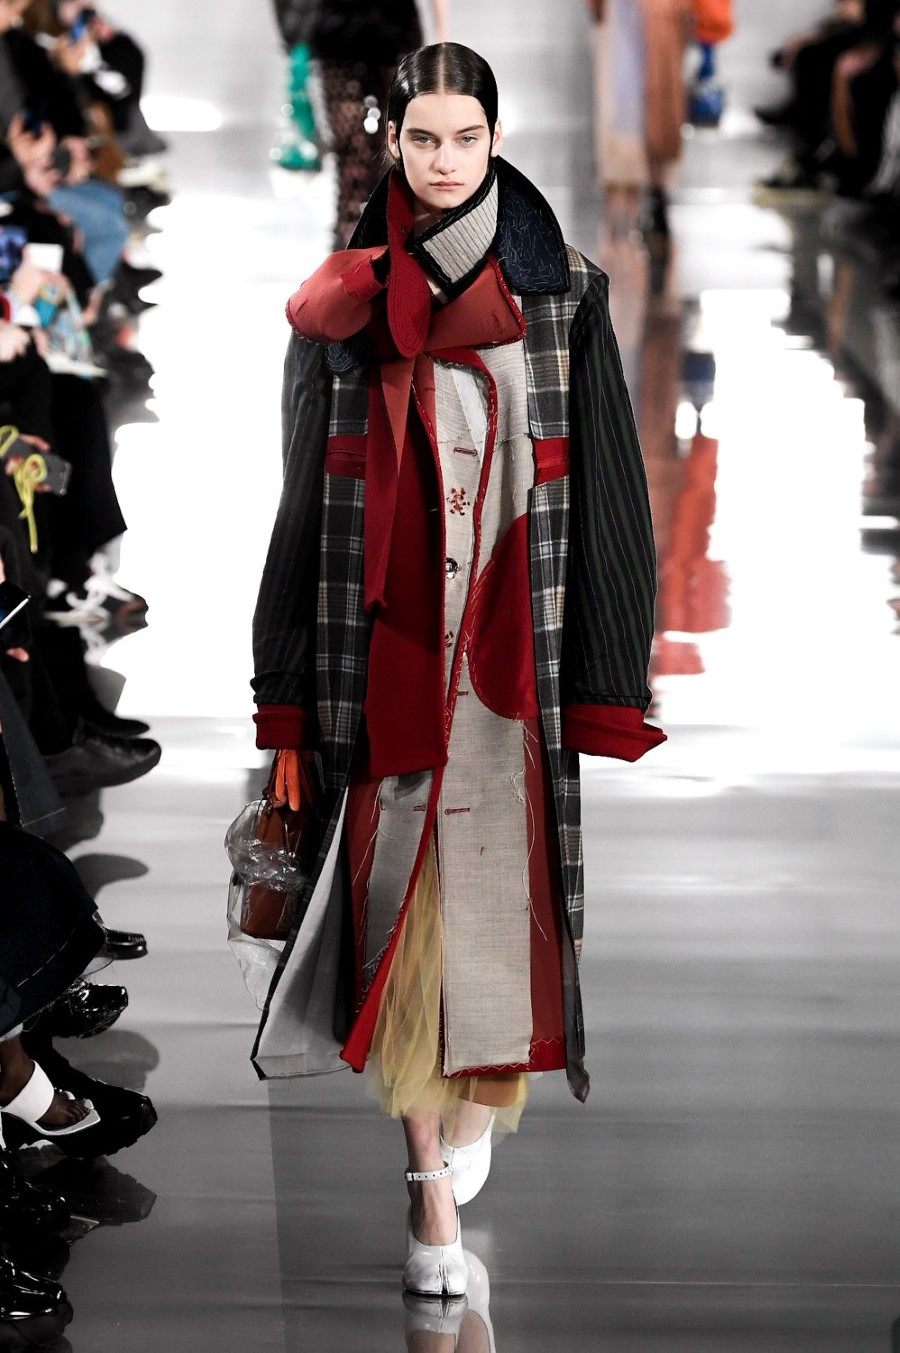 Maison Margiela - Fall Winter 2020 - Paris Fashion Week